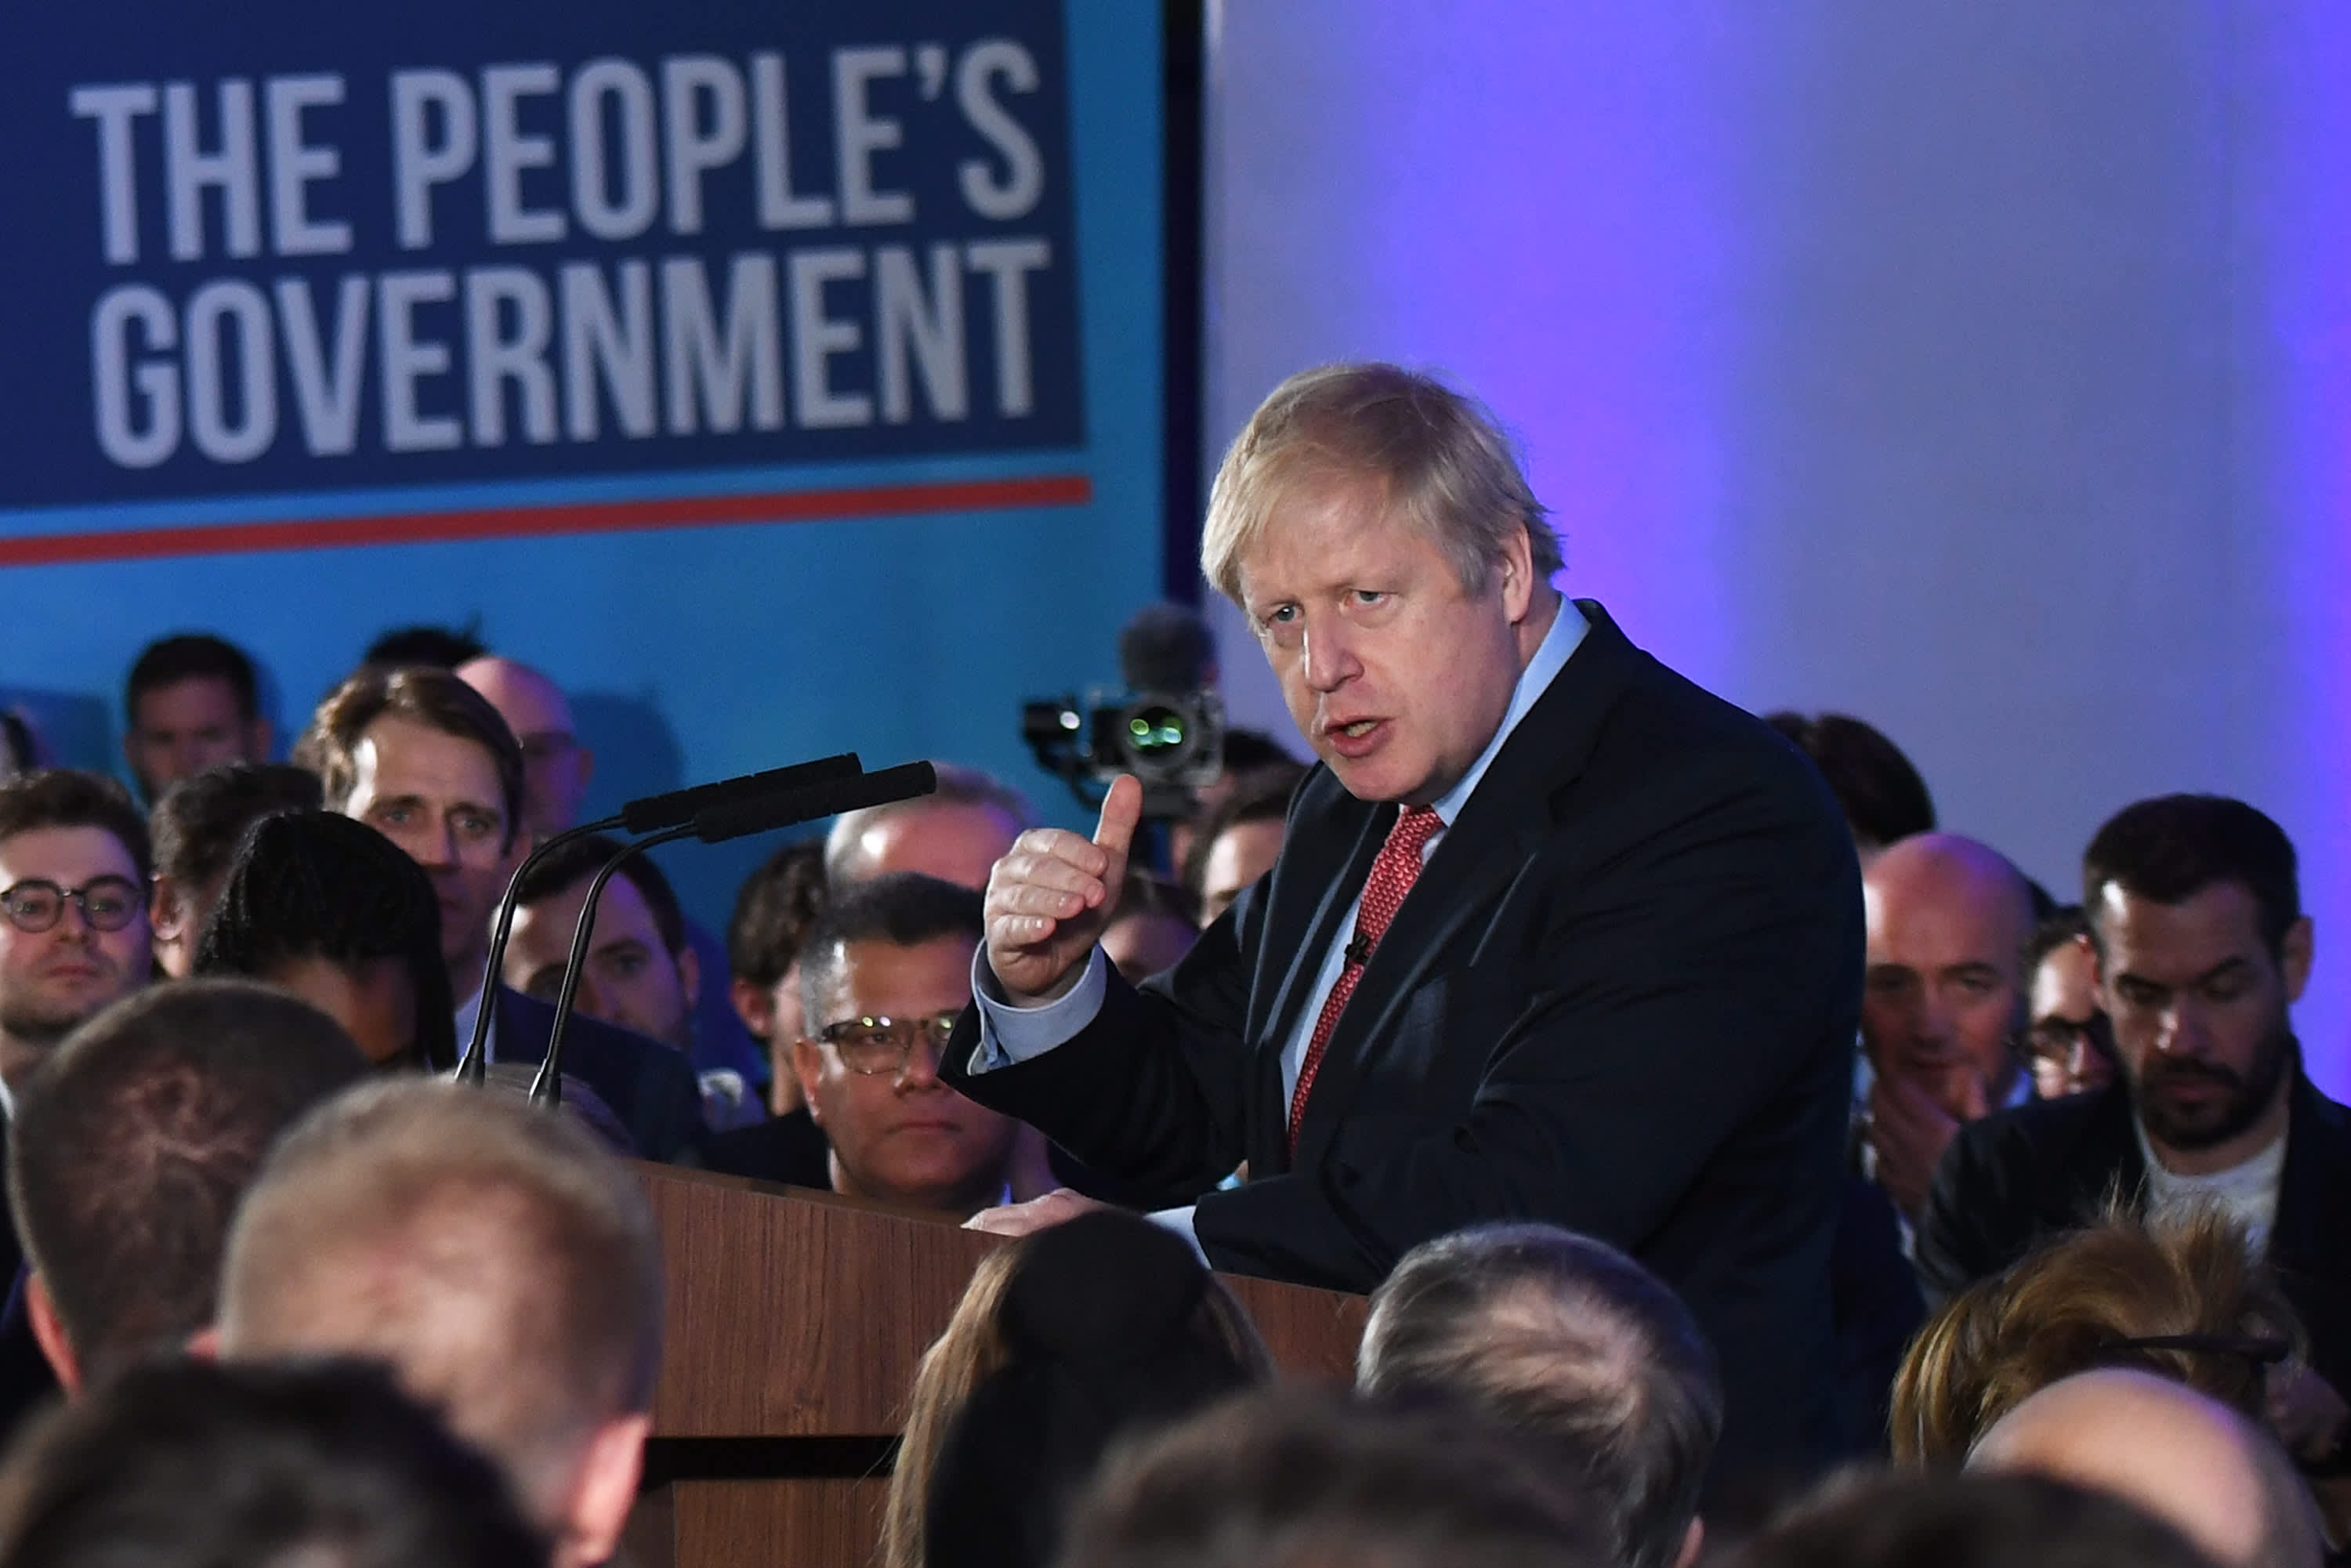 Boris Johnson secures biggest Conservative Party election win since 1987